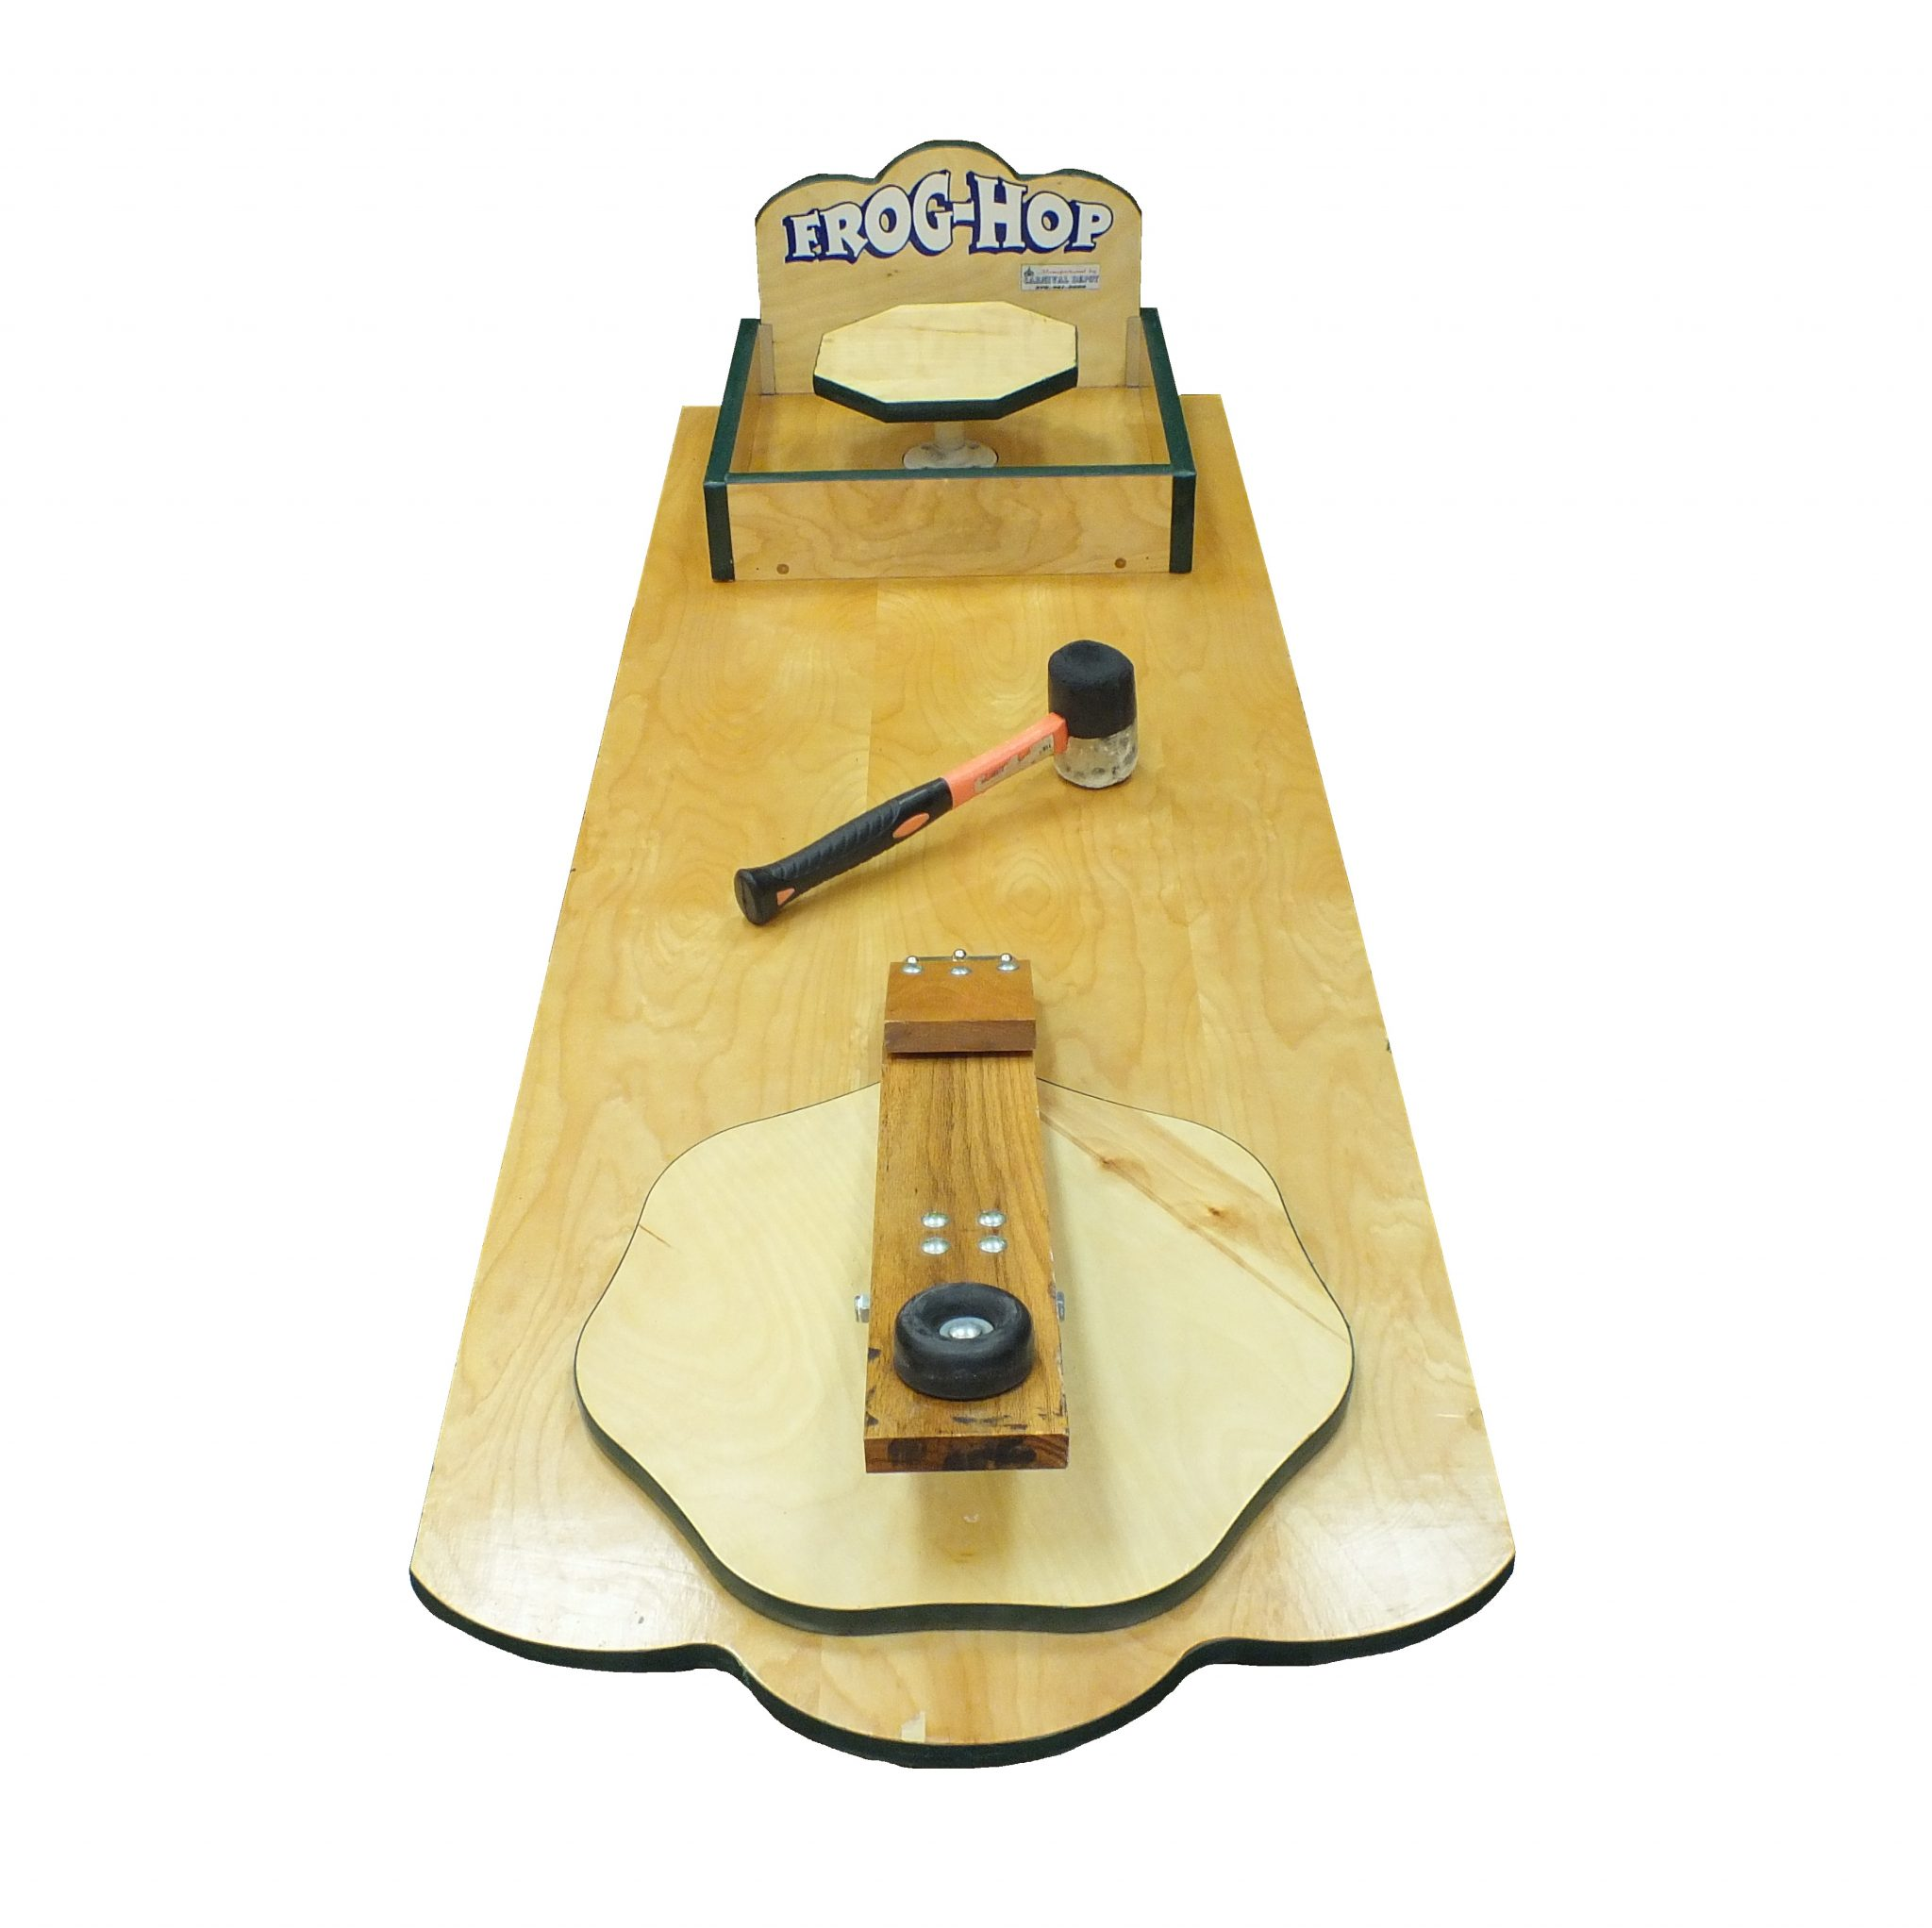 Wooden Frog Hop Carnival Game